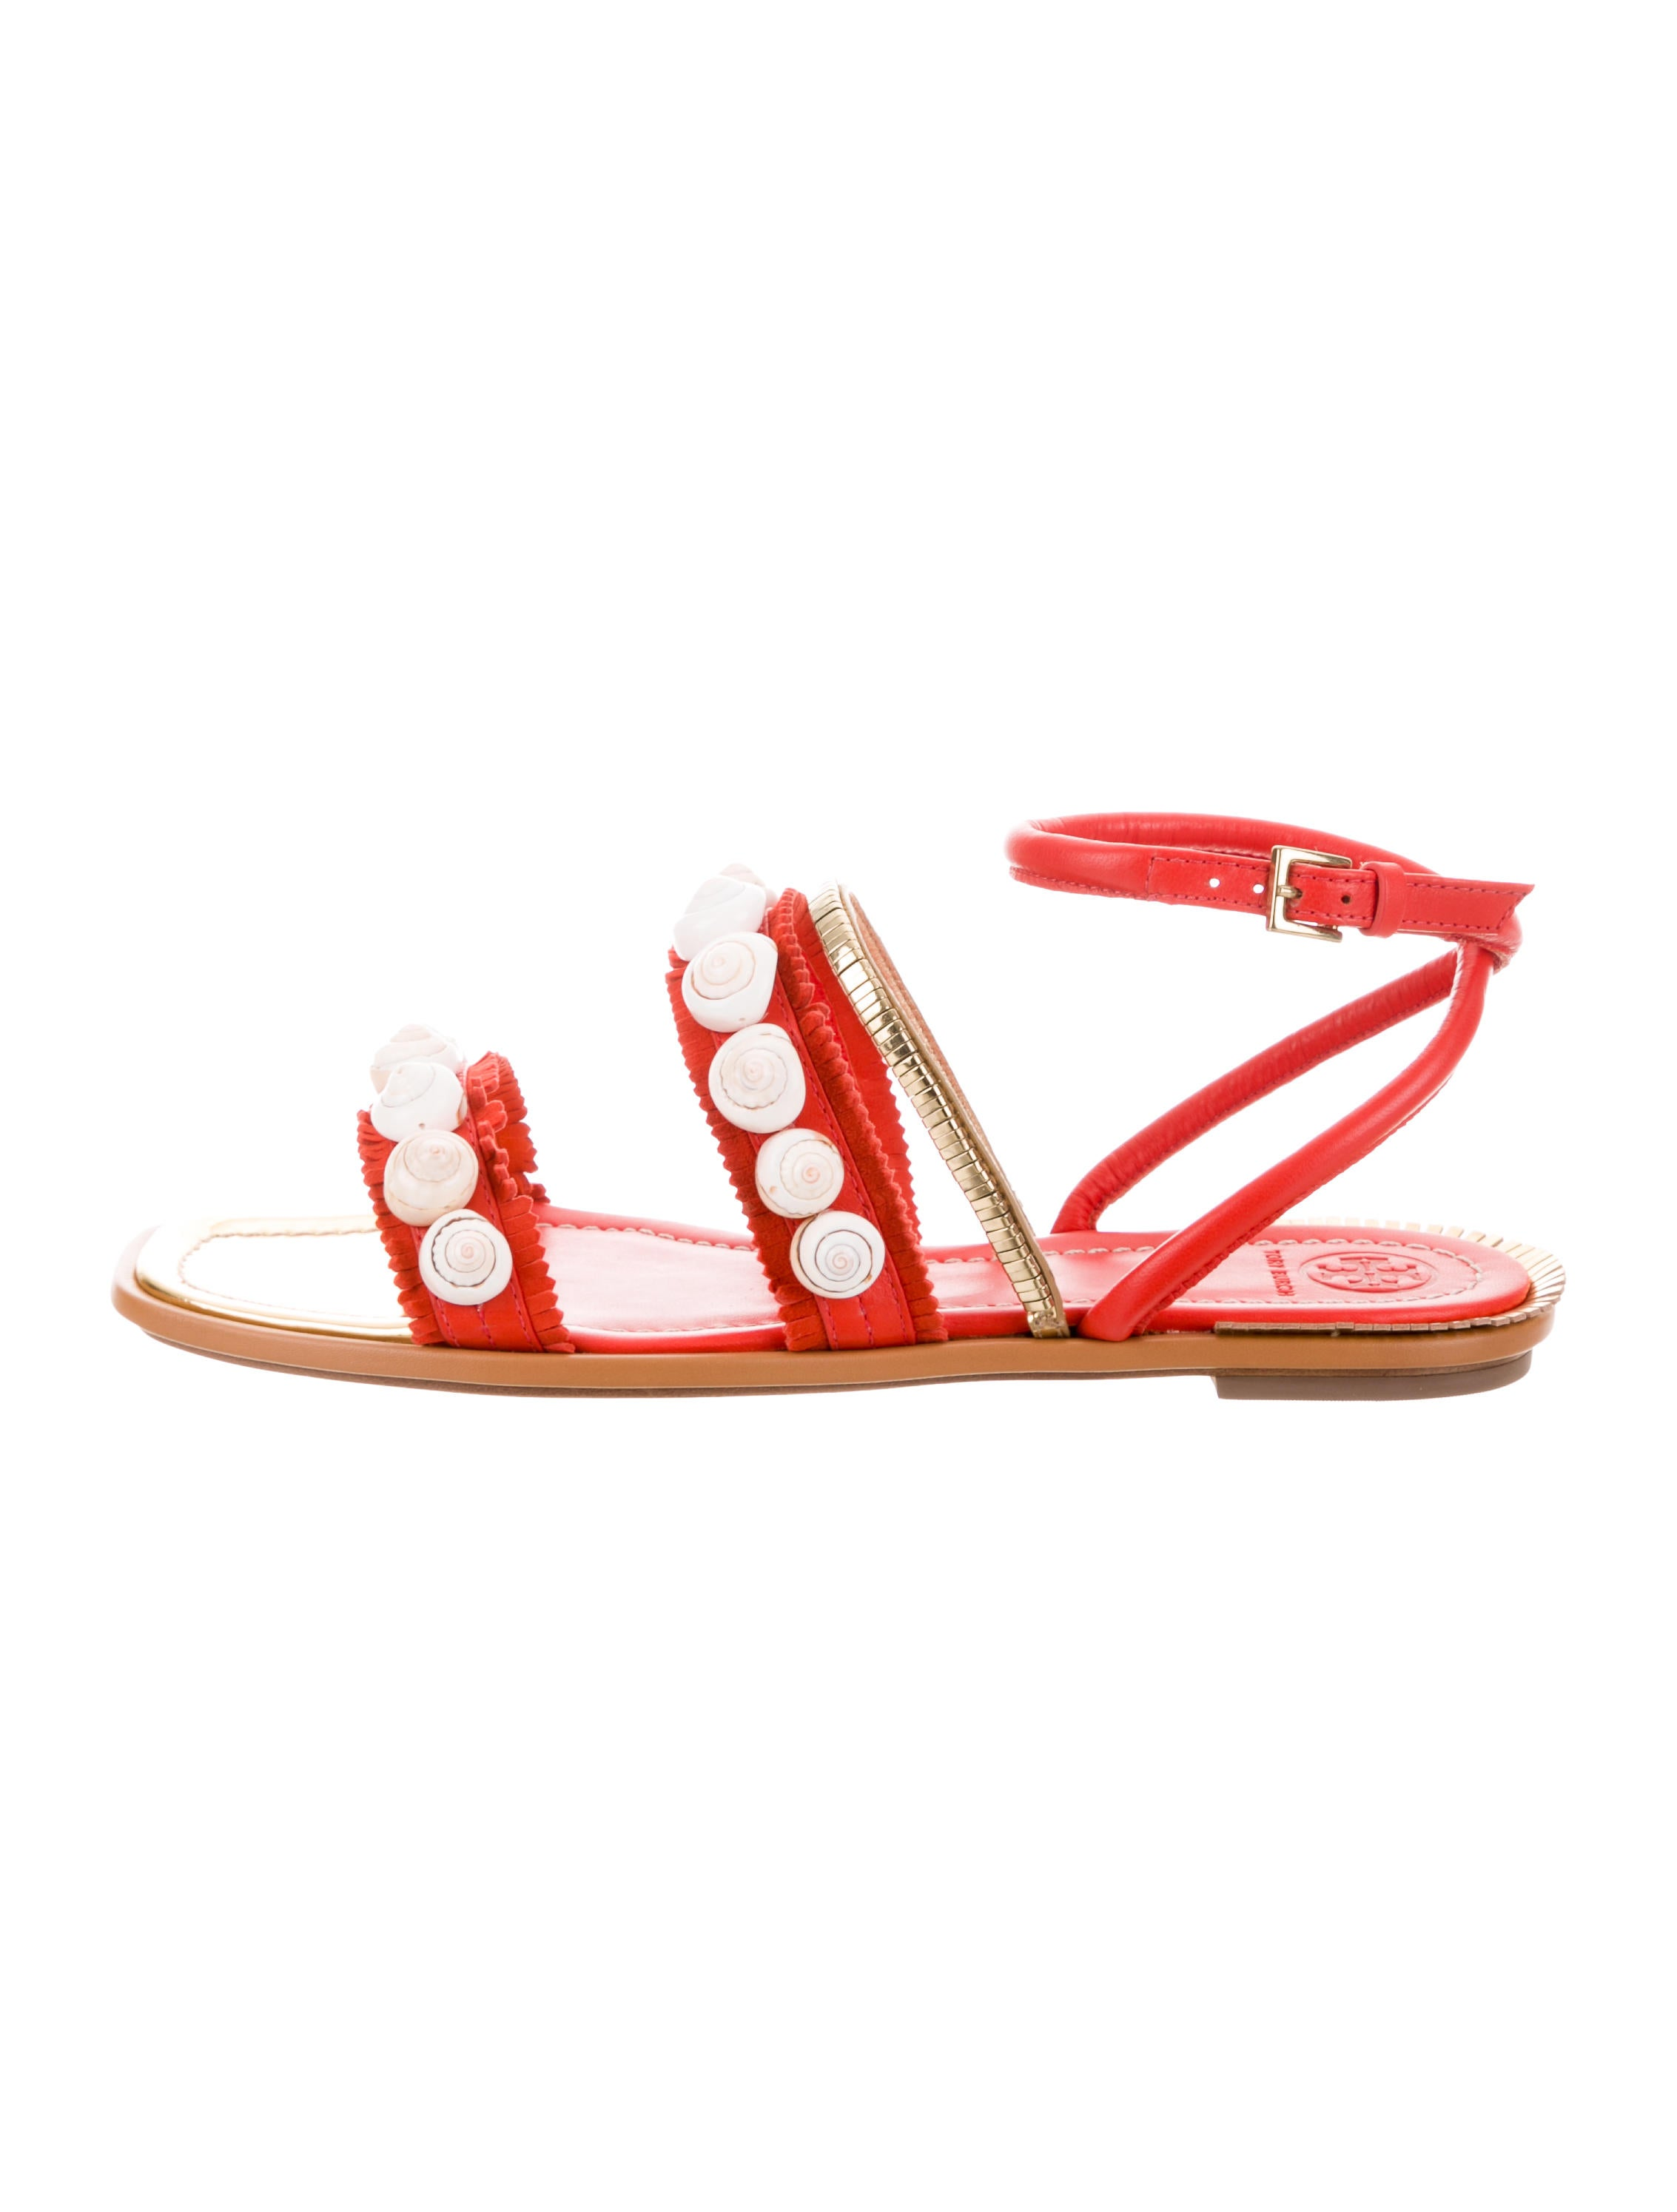 5311f796a3a31e Tory Burch Sinclair Embellished Sandals w  Tags - Shoes - WTO149899 ...